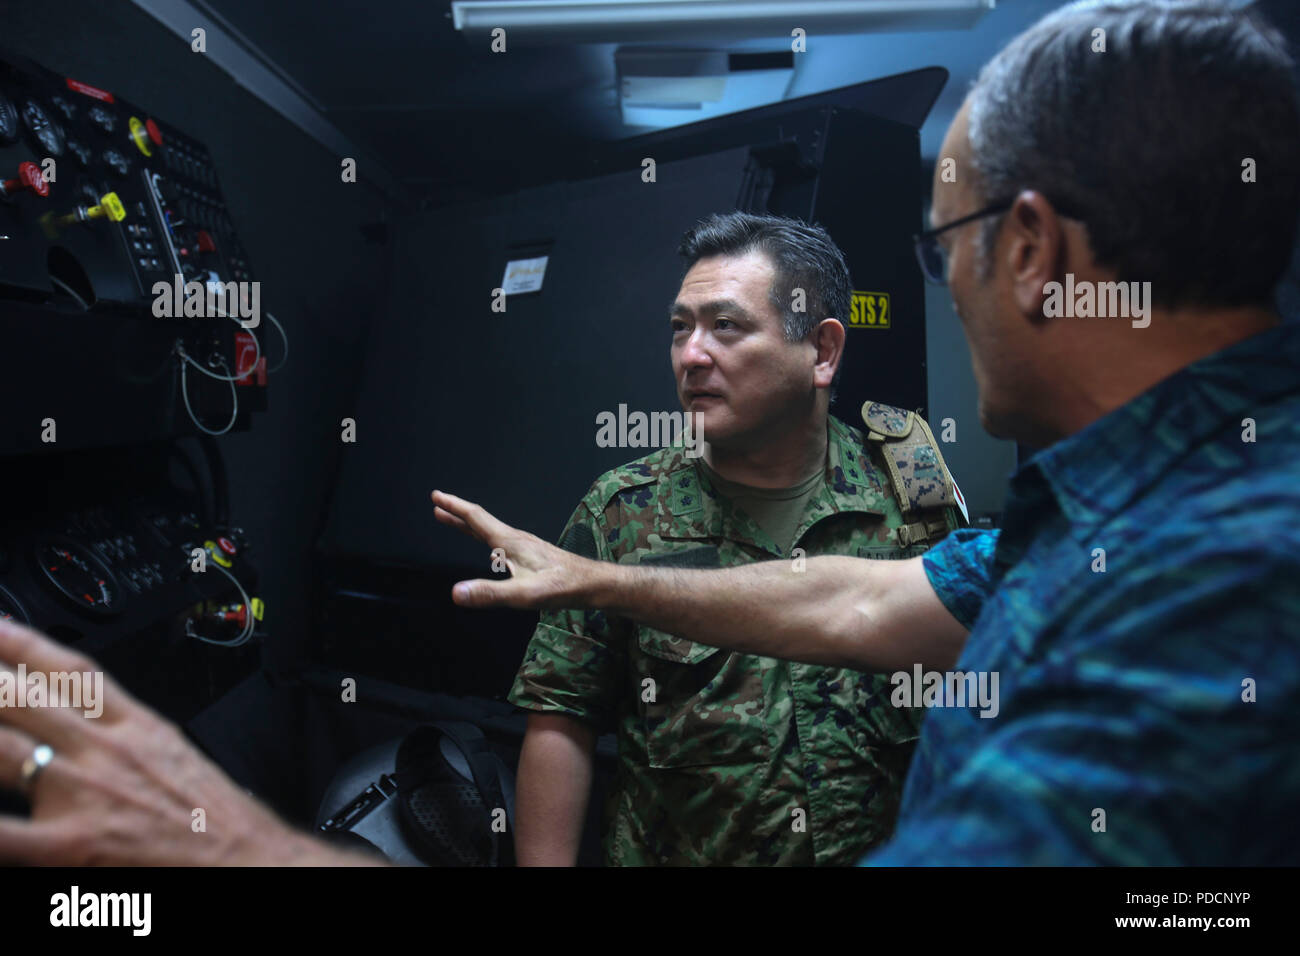 Major Gen. Yoshiki Adachi, defense and military attaché, Embassy of Japan, is briefed on the schematics of a controlled driving simulator on Camp Lejeune, N.C., Aug. 3, 2018. Adachi is visiting the Marines and Sailors of II Marine Expeditionary Force to continue to build relationships and understand II MEF's mission and activities in the western hemisphere in regards to its amphibious capabilities and operations. (U.S. Marine Corps photo by Lance Cpl. Samuel Lyden) - Stock Image